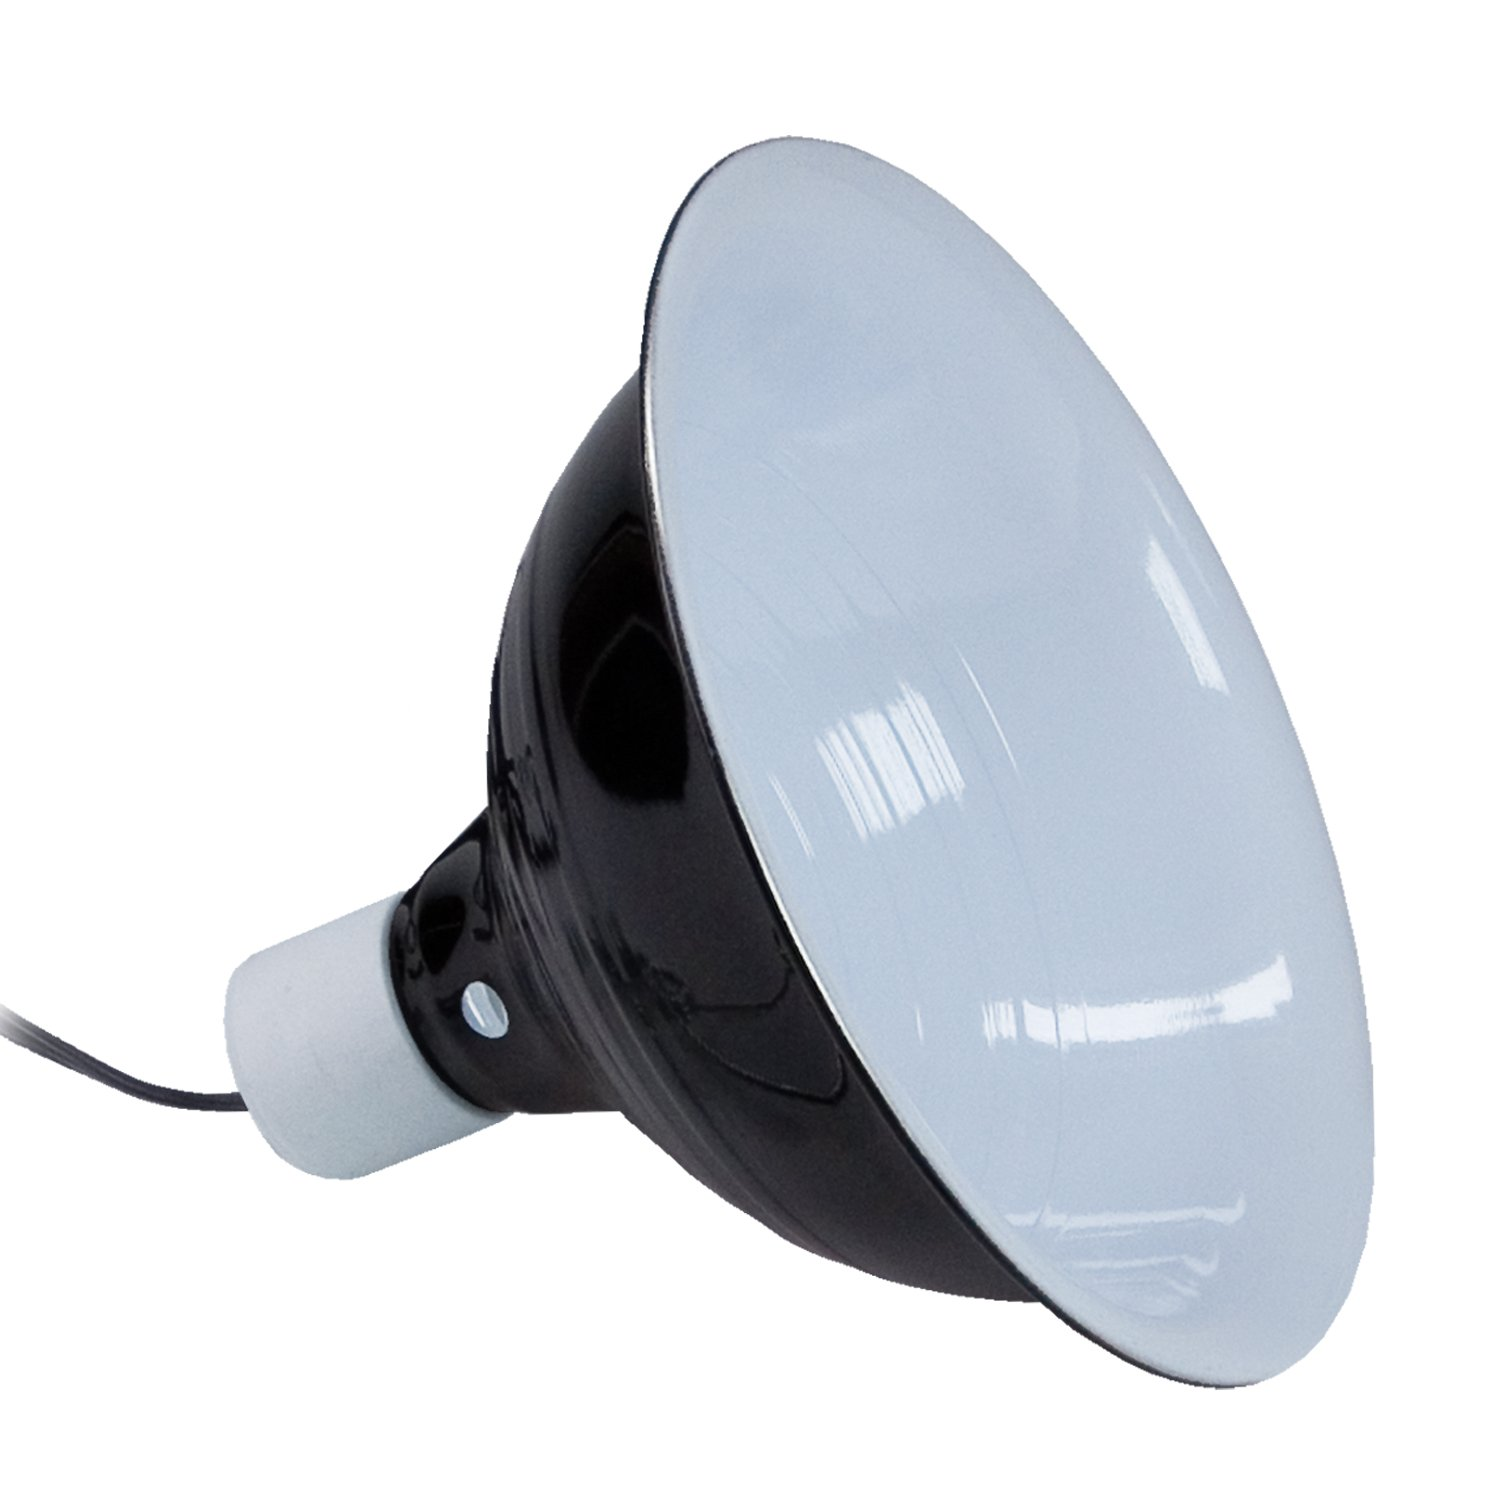 """Shop Light With Reflector: Zilla Black Reflector Dome Lamp, 8.5"""" Length"""